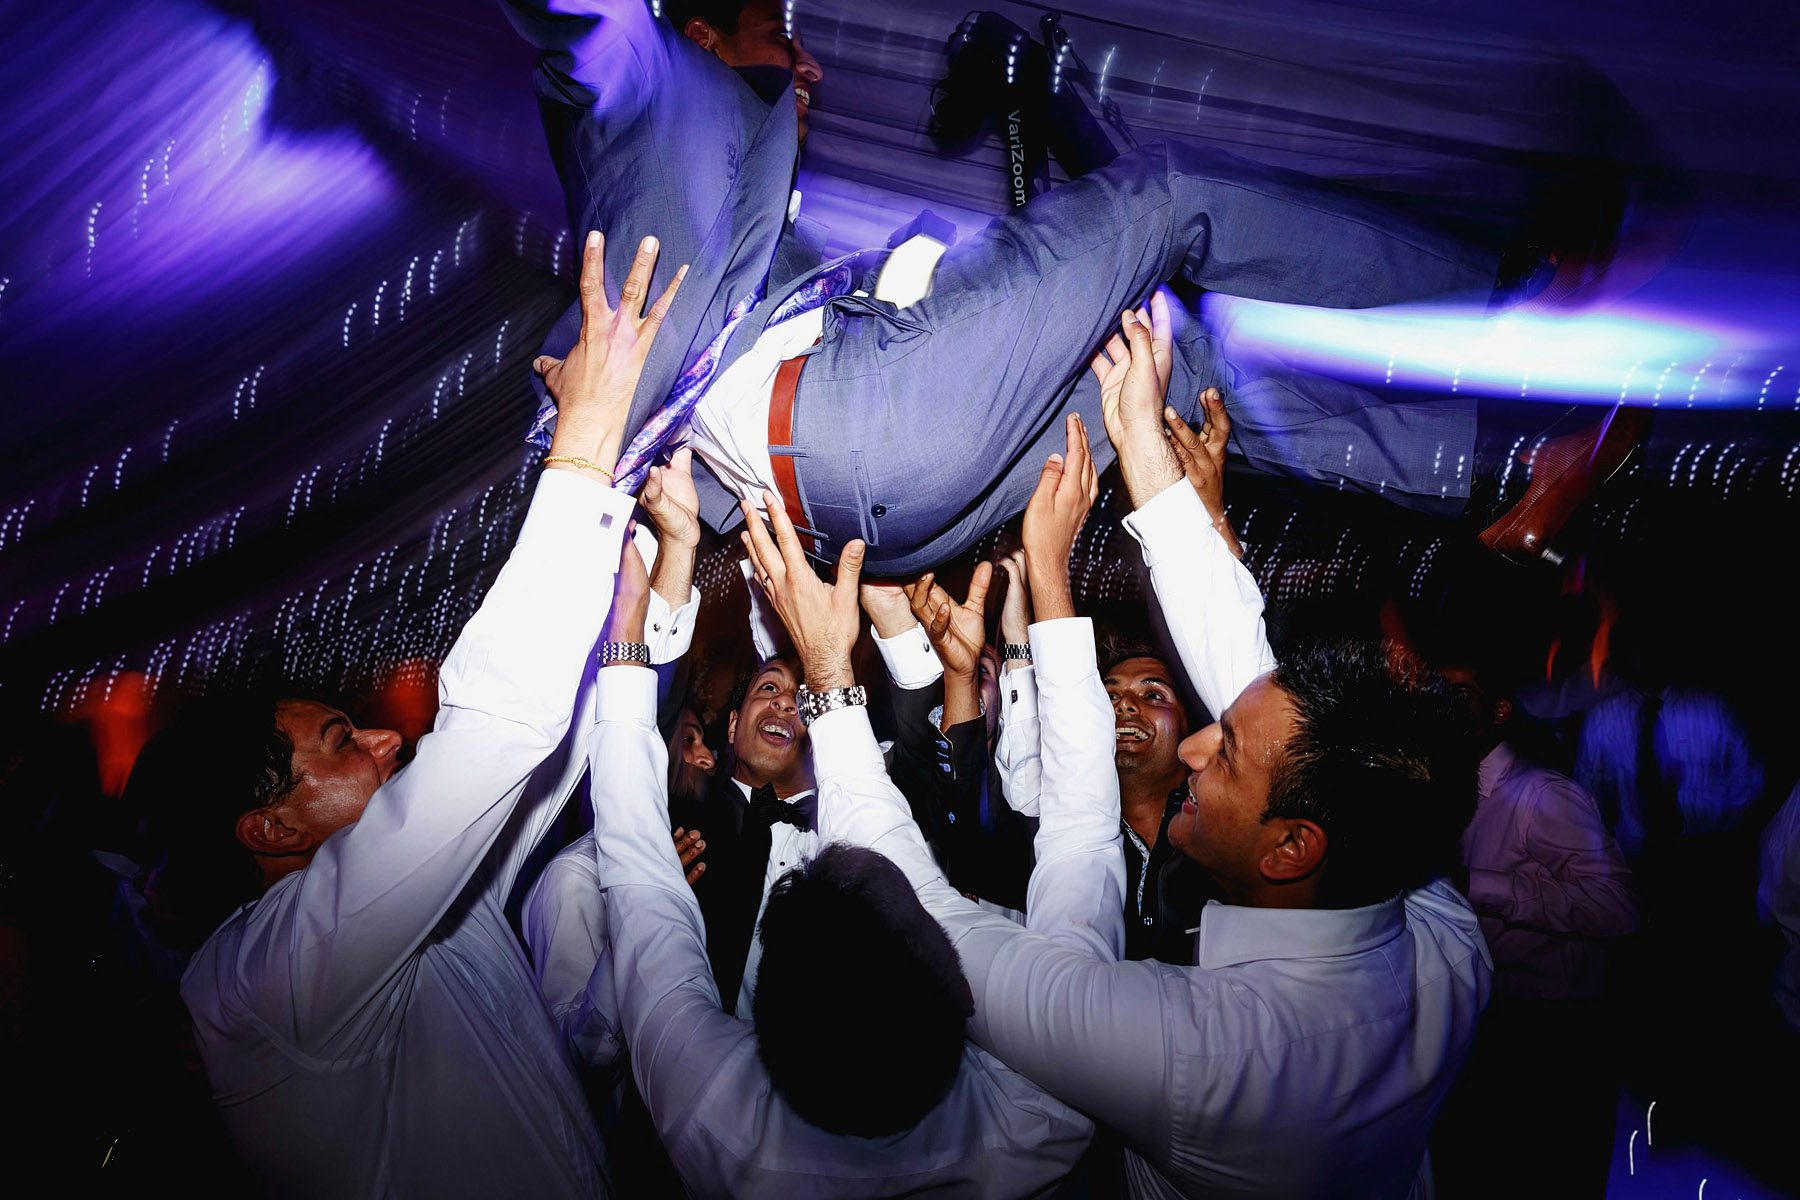 groom-lifted-high-by-guests-by-rahul-khona